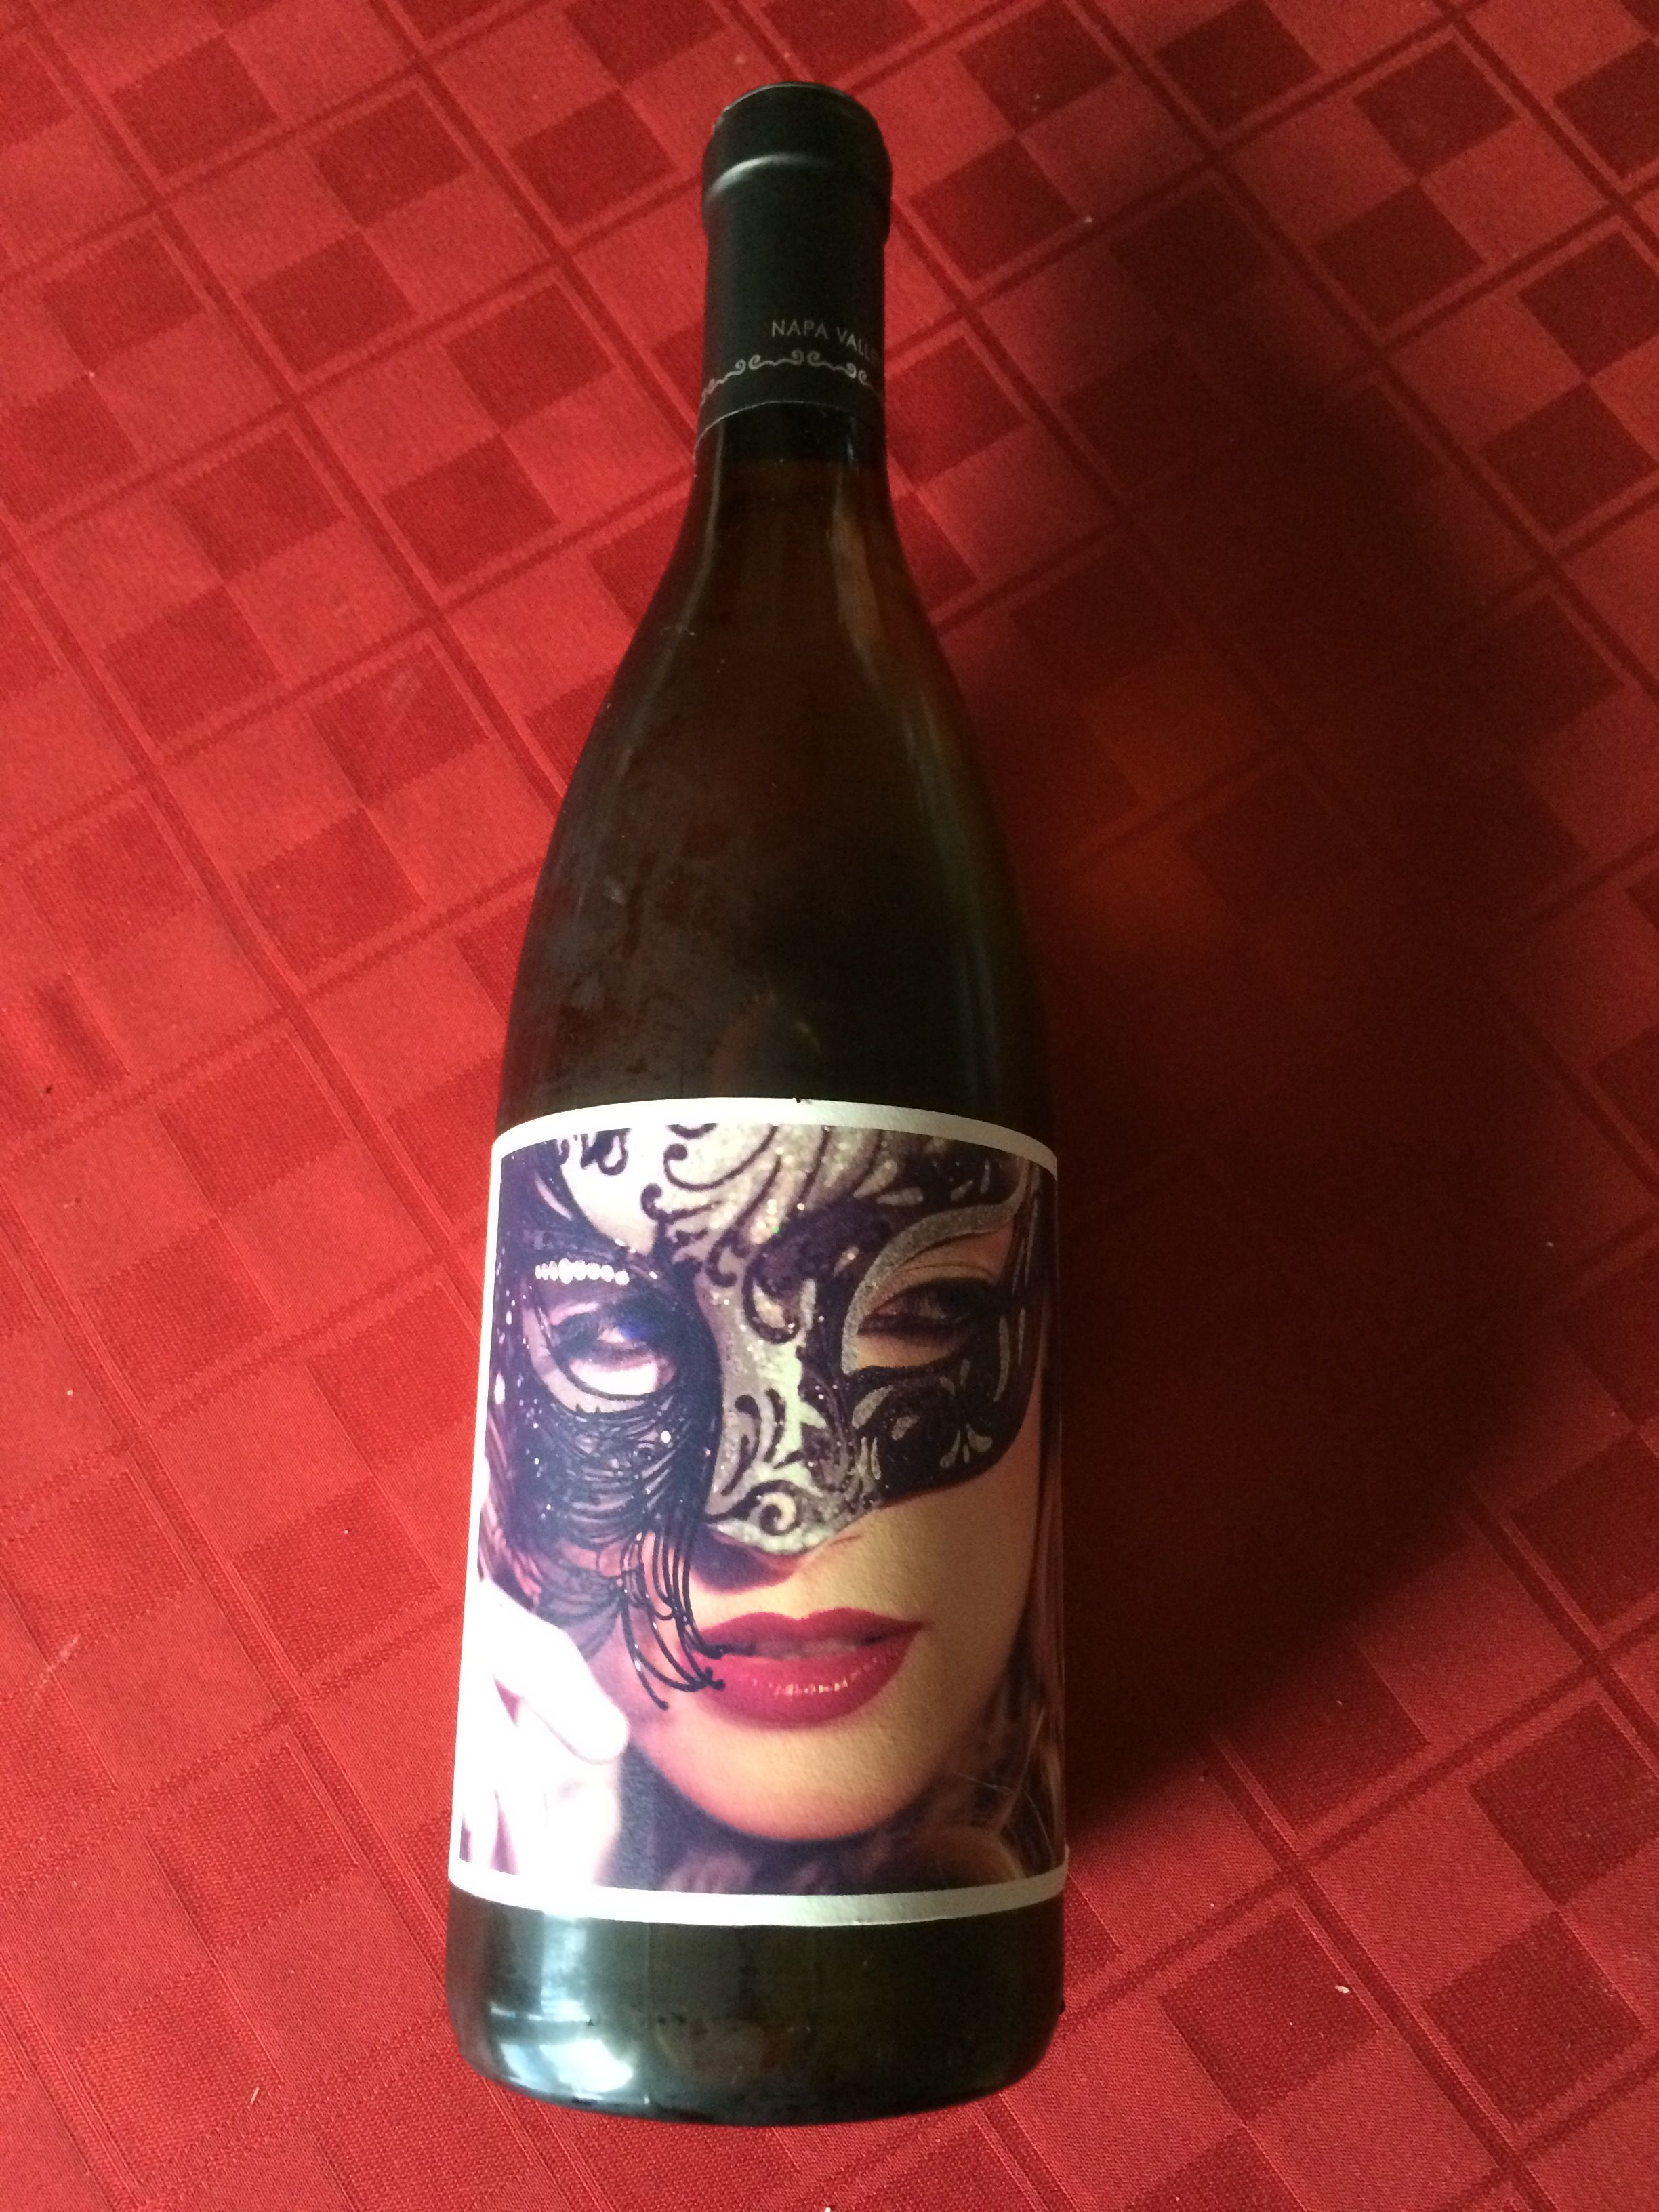 This Is Osso Anna Chardonnay A Perfect Pick For Mardi Gras Wine Bottle Chardonnay Mardi Gras